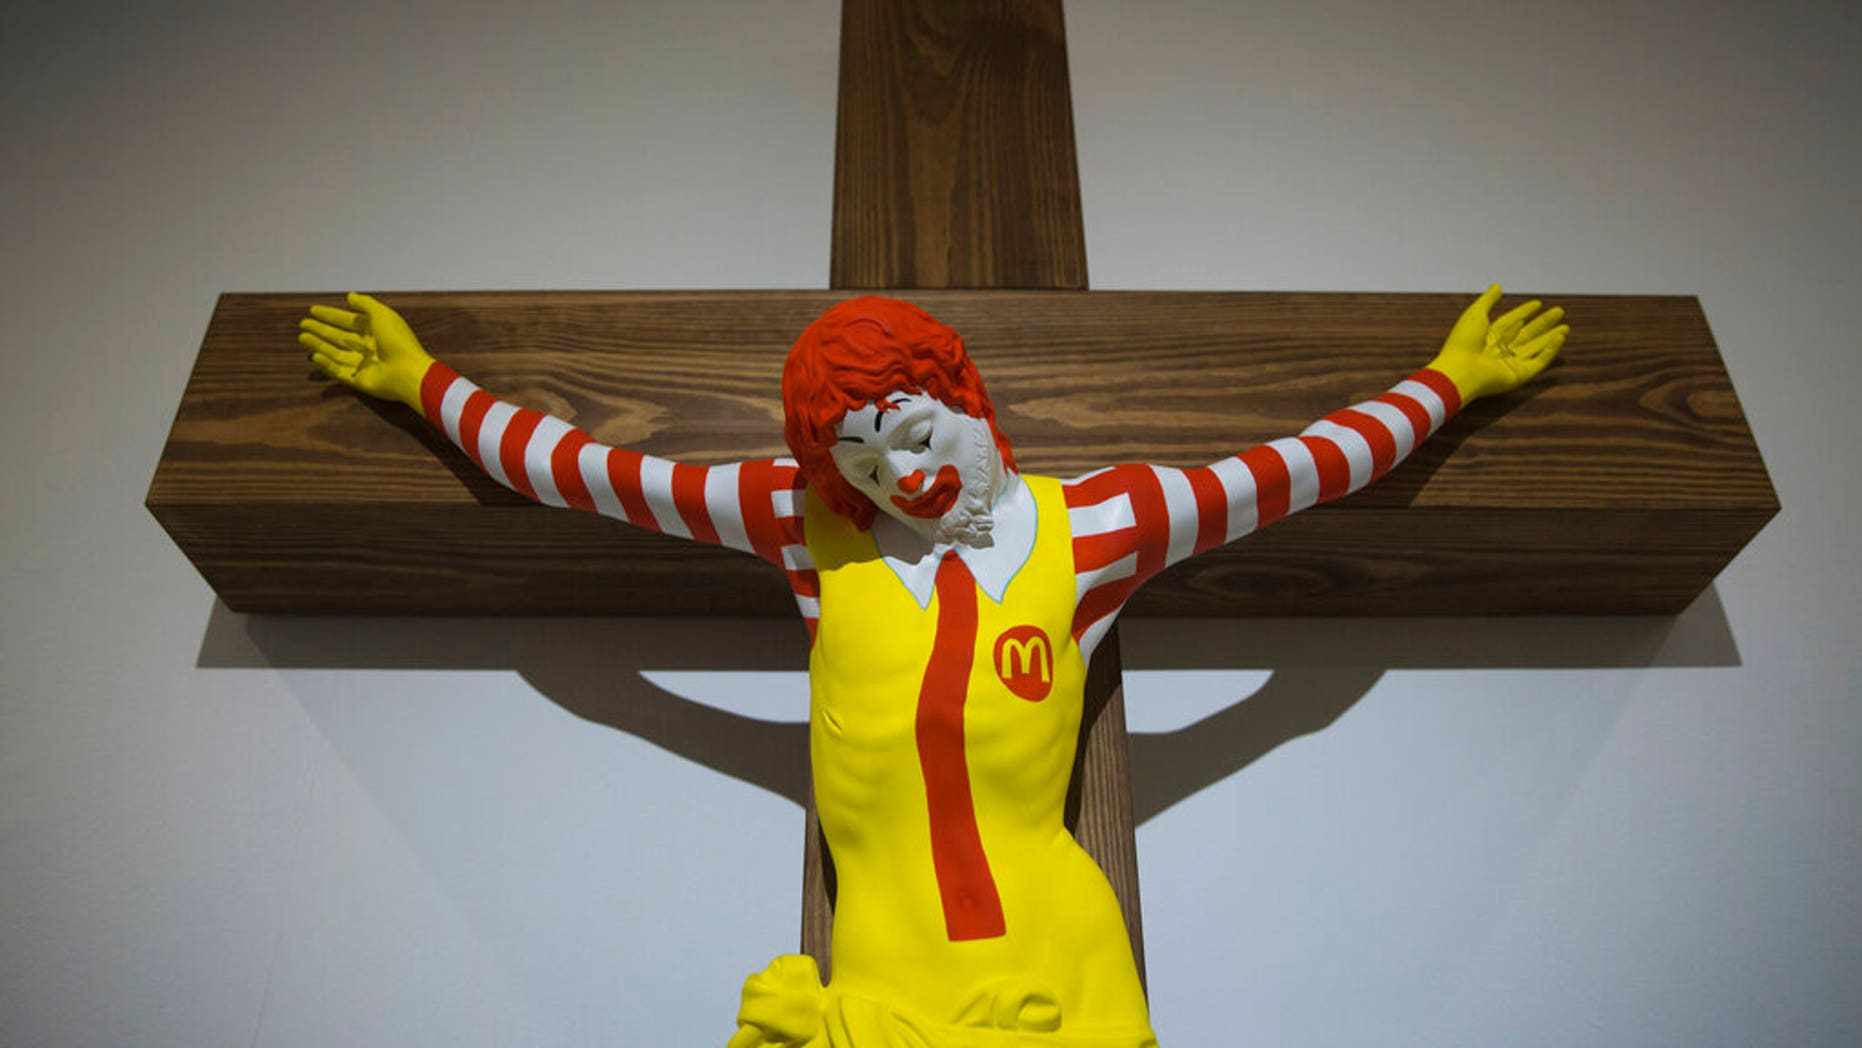 """An artwork called """"McJesus,"""" which was sculpted by Finnish artist Jani Leinonen and depicts a crucified Ronald McDonald, is seen on display as part of the Haifa museum's """"Sacred Goods"""" exhibit, in Haifa, Israel, Monday, Jan. 14, 2019. Hundreds of Christians calling for the sculpture's removal protested at the museum last week. (AP Photo/Oded Balilty)"""